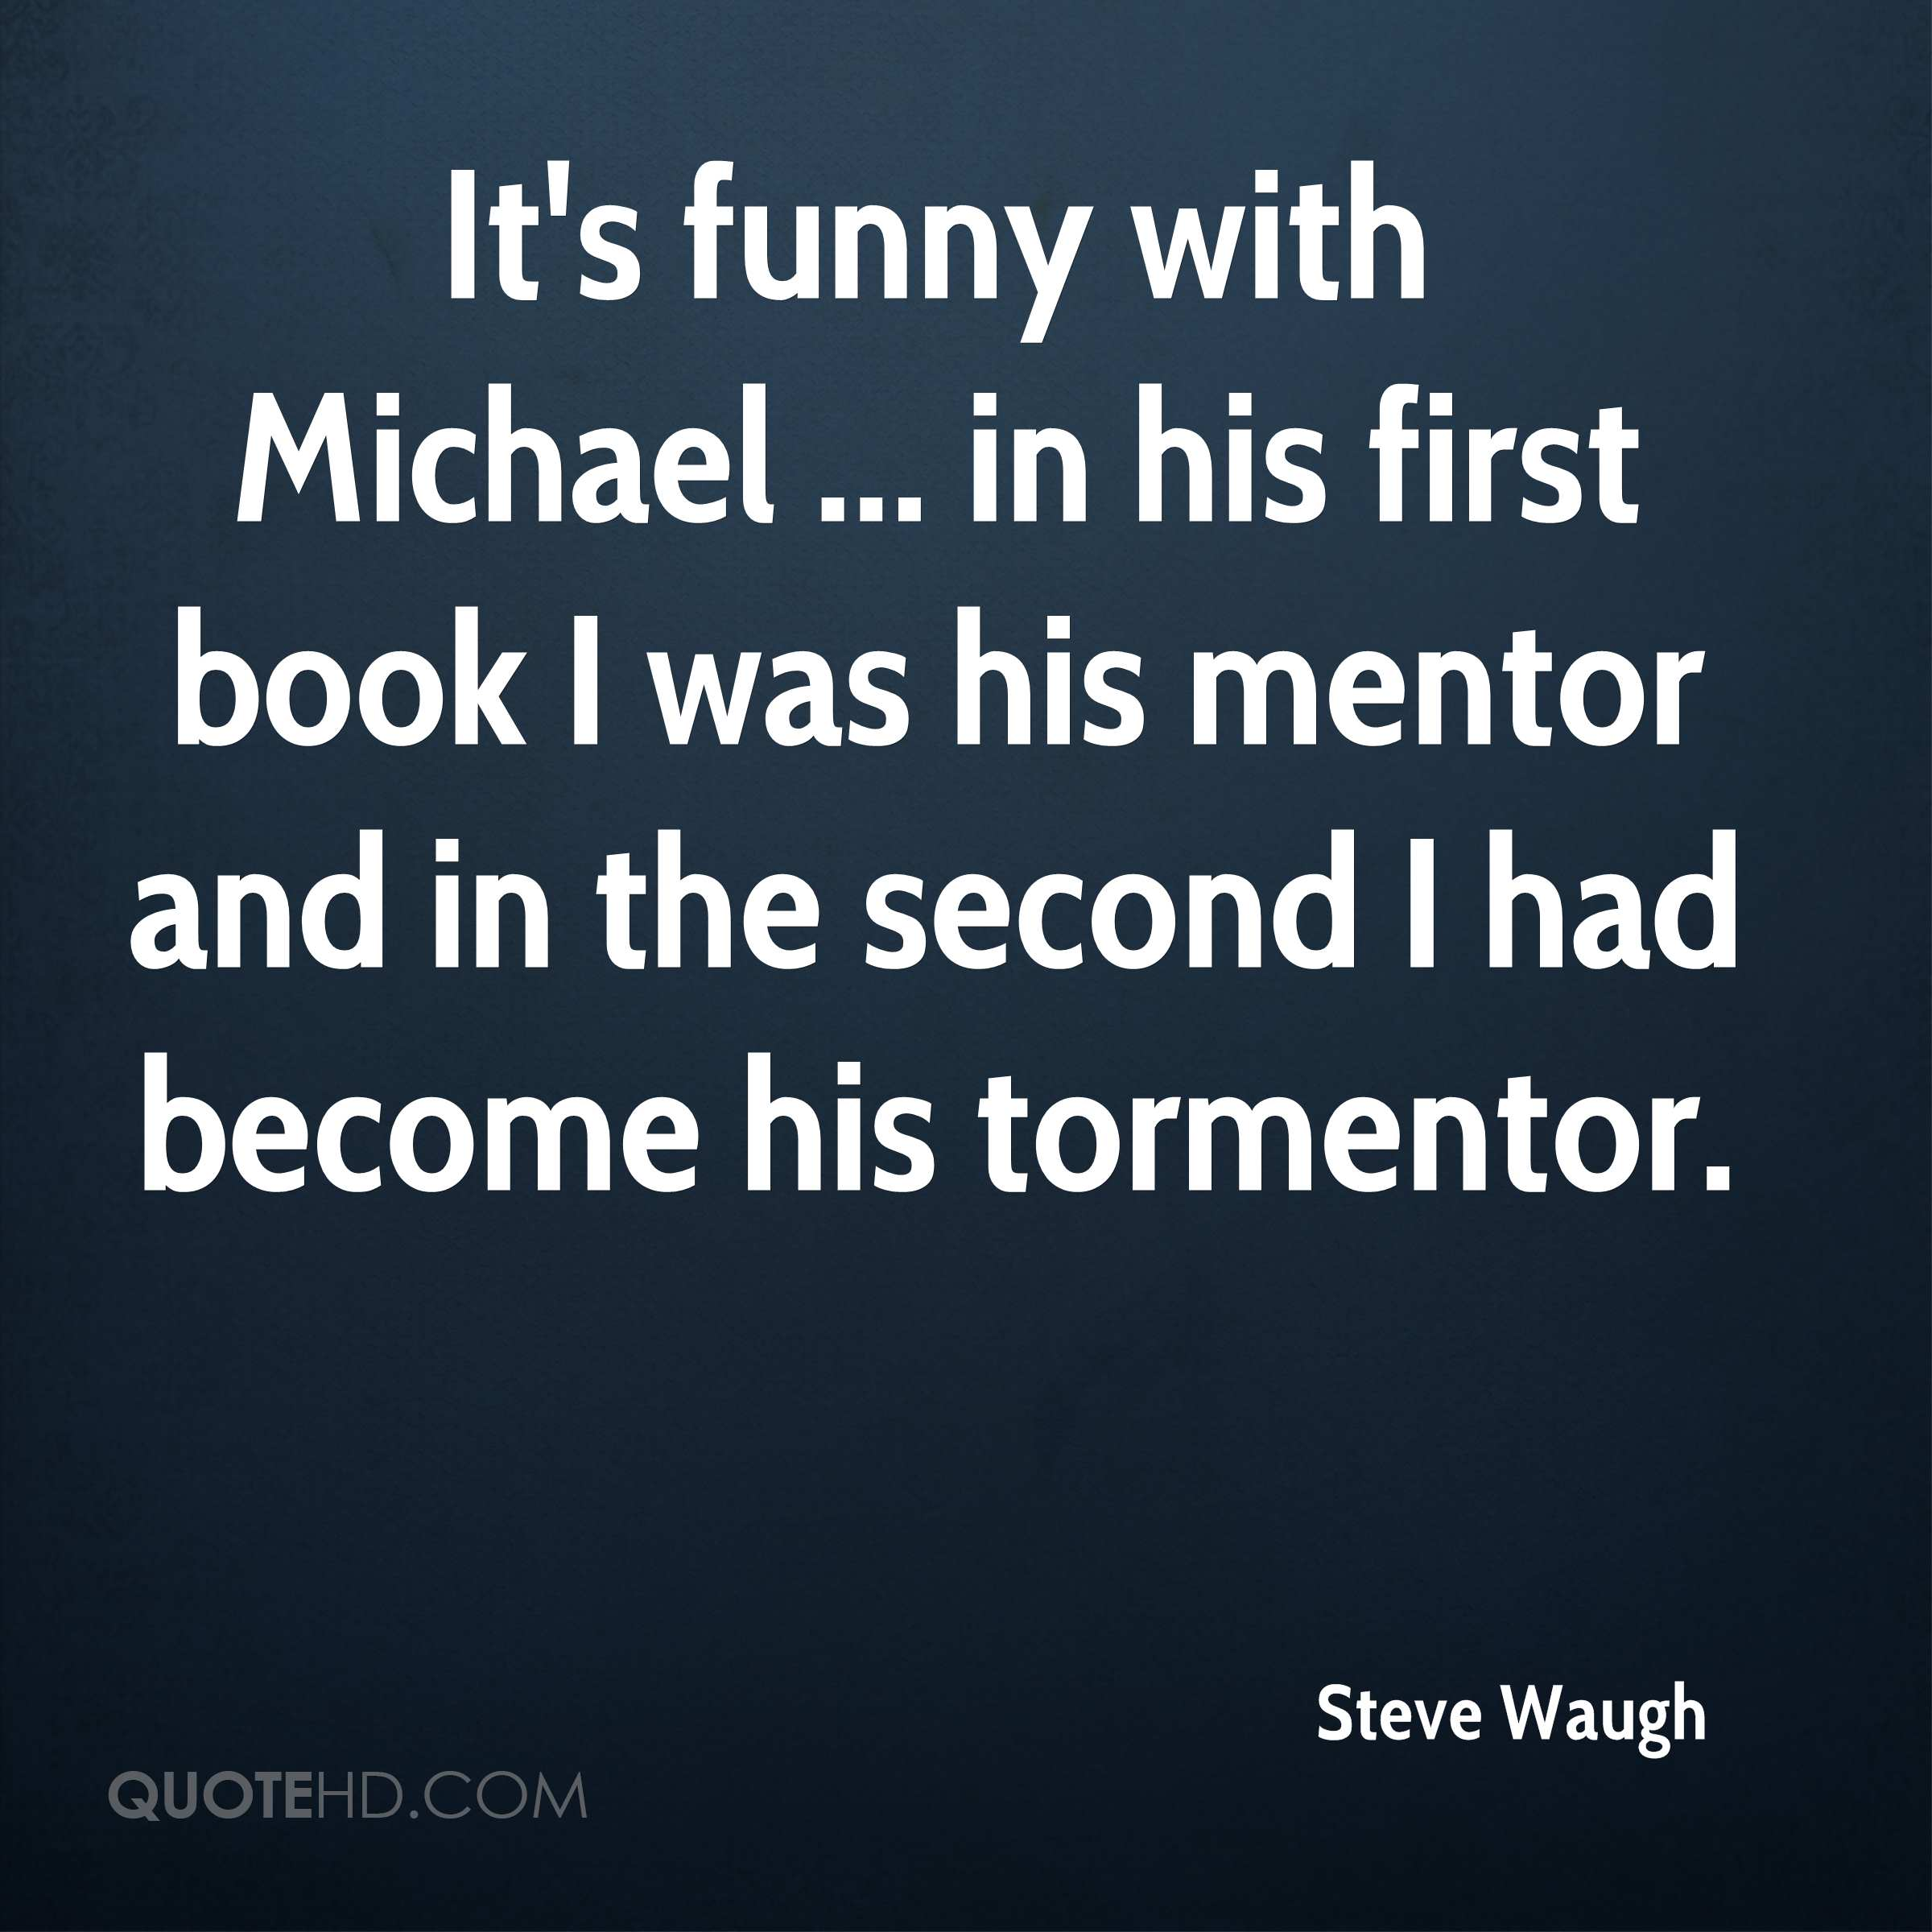 It's funny with Michael ... in his first book I was his mentor and in the second I had become his tormentor.